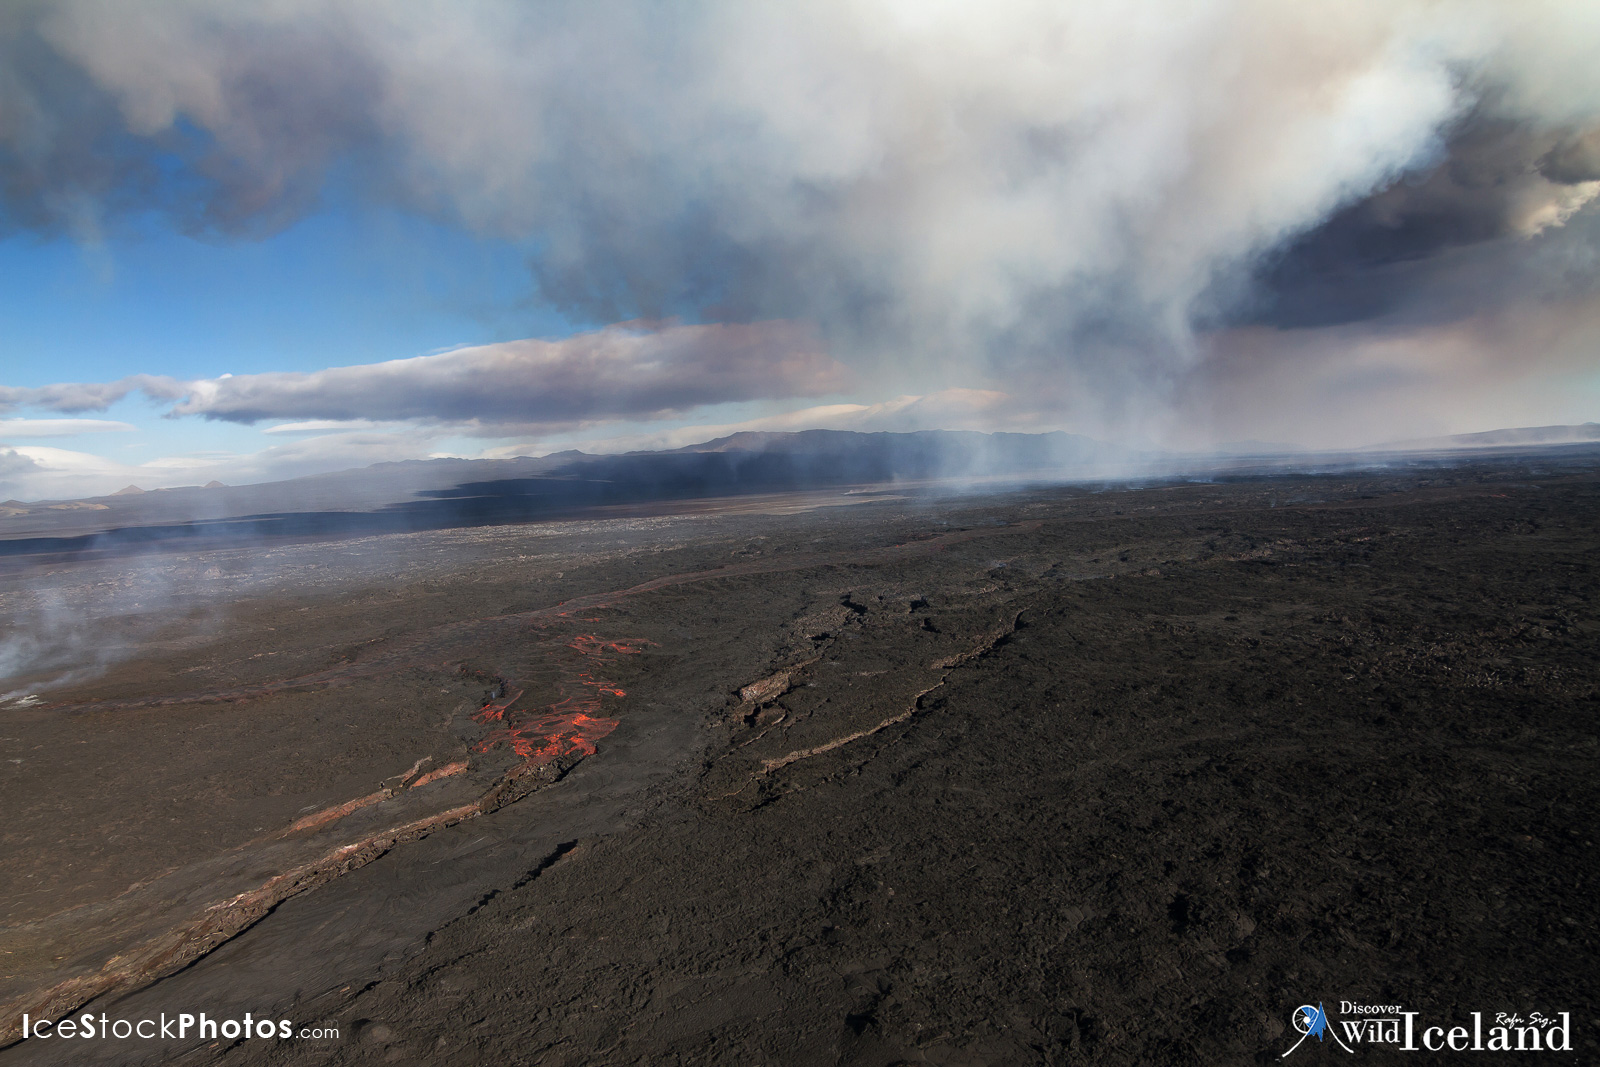 Eruption at Holuhraun in the Highlands of #Iceland